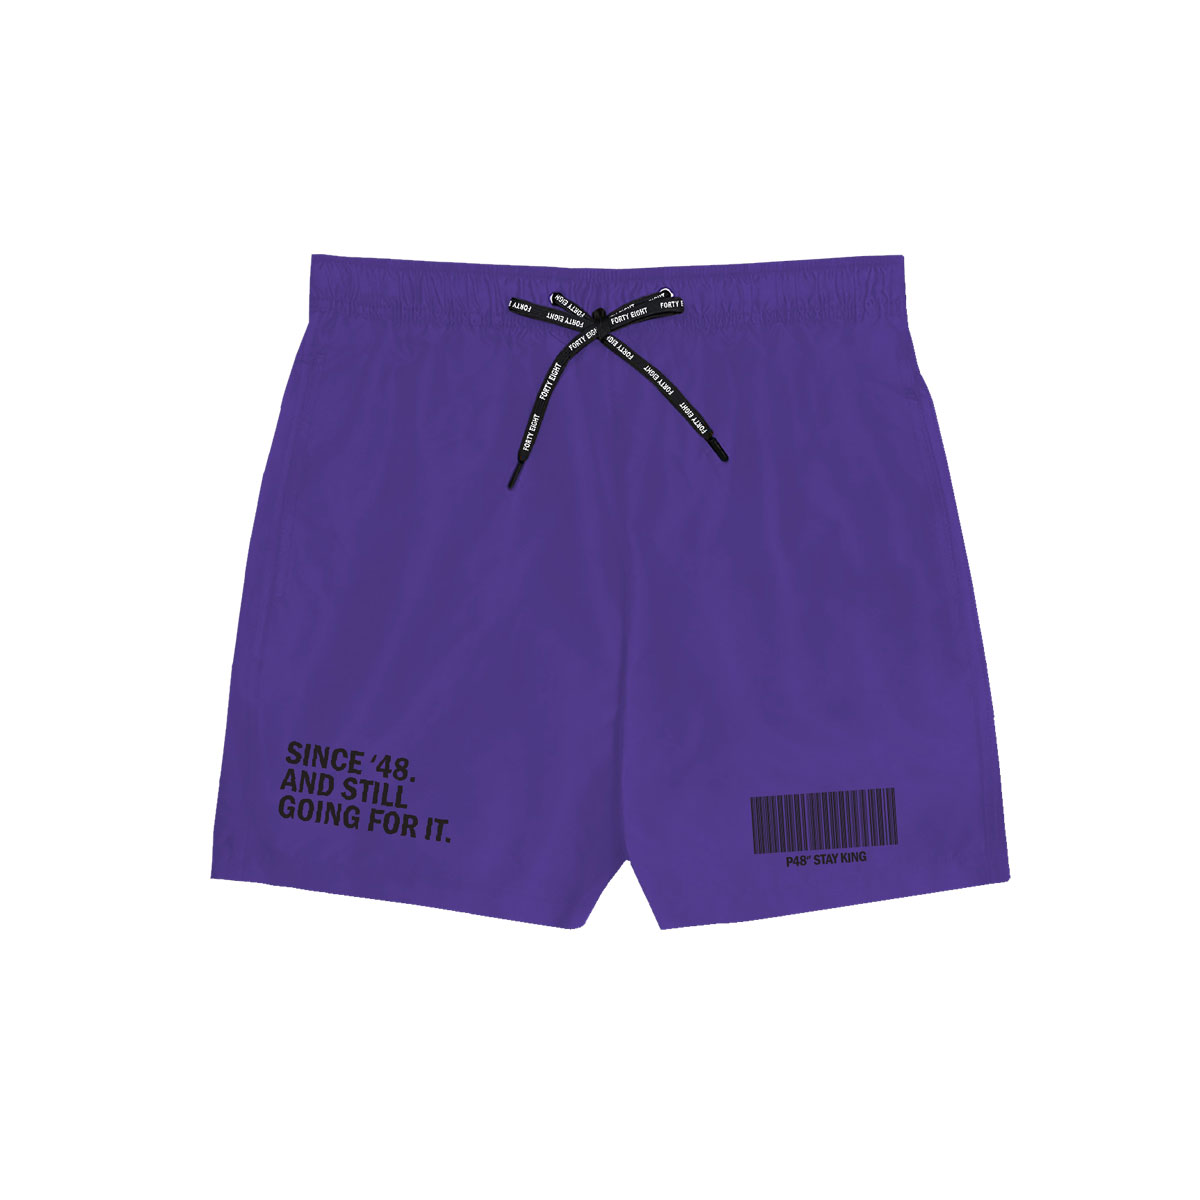 Since 48 Swimming Short - Purple